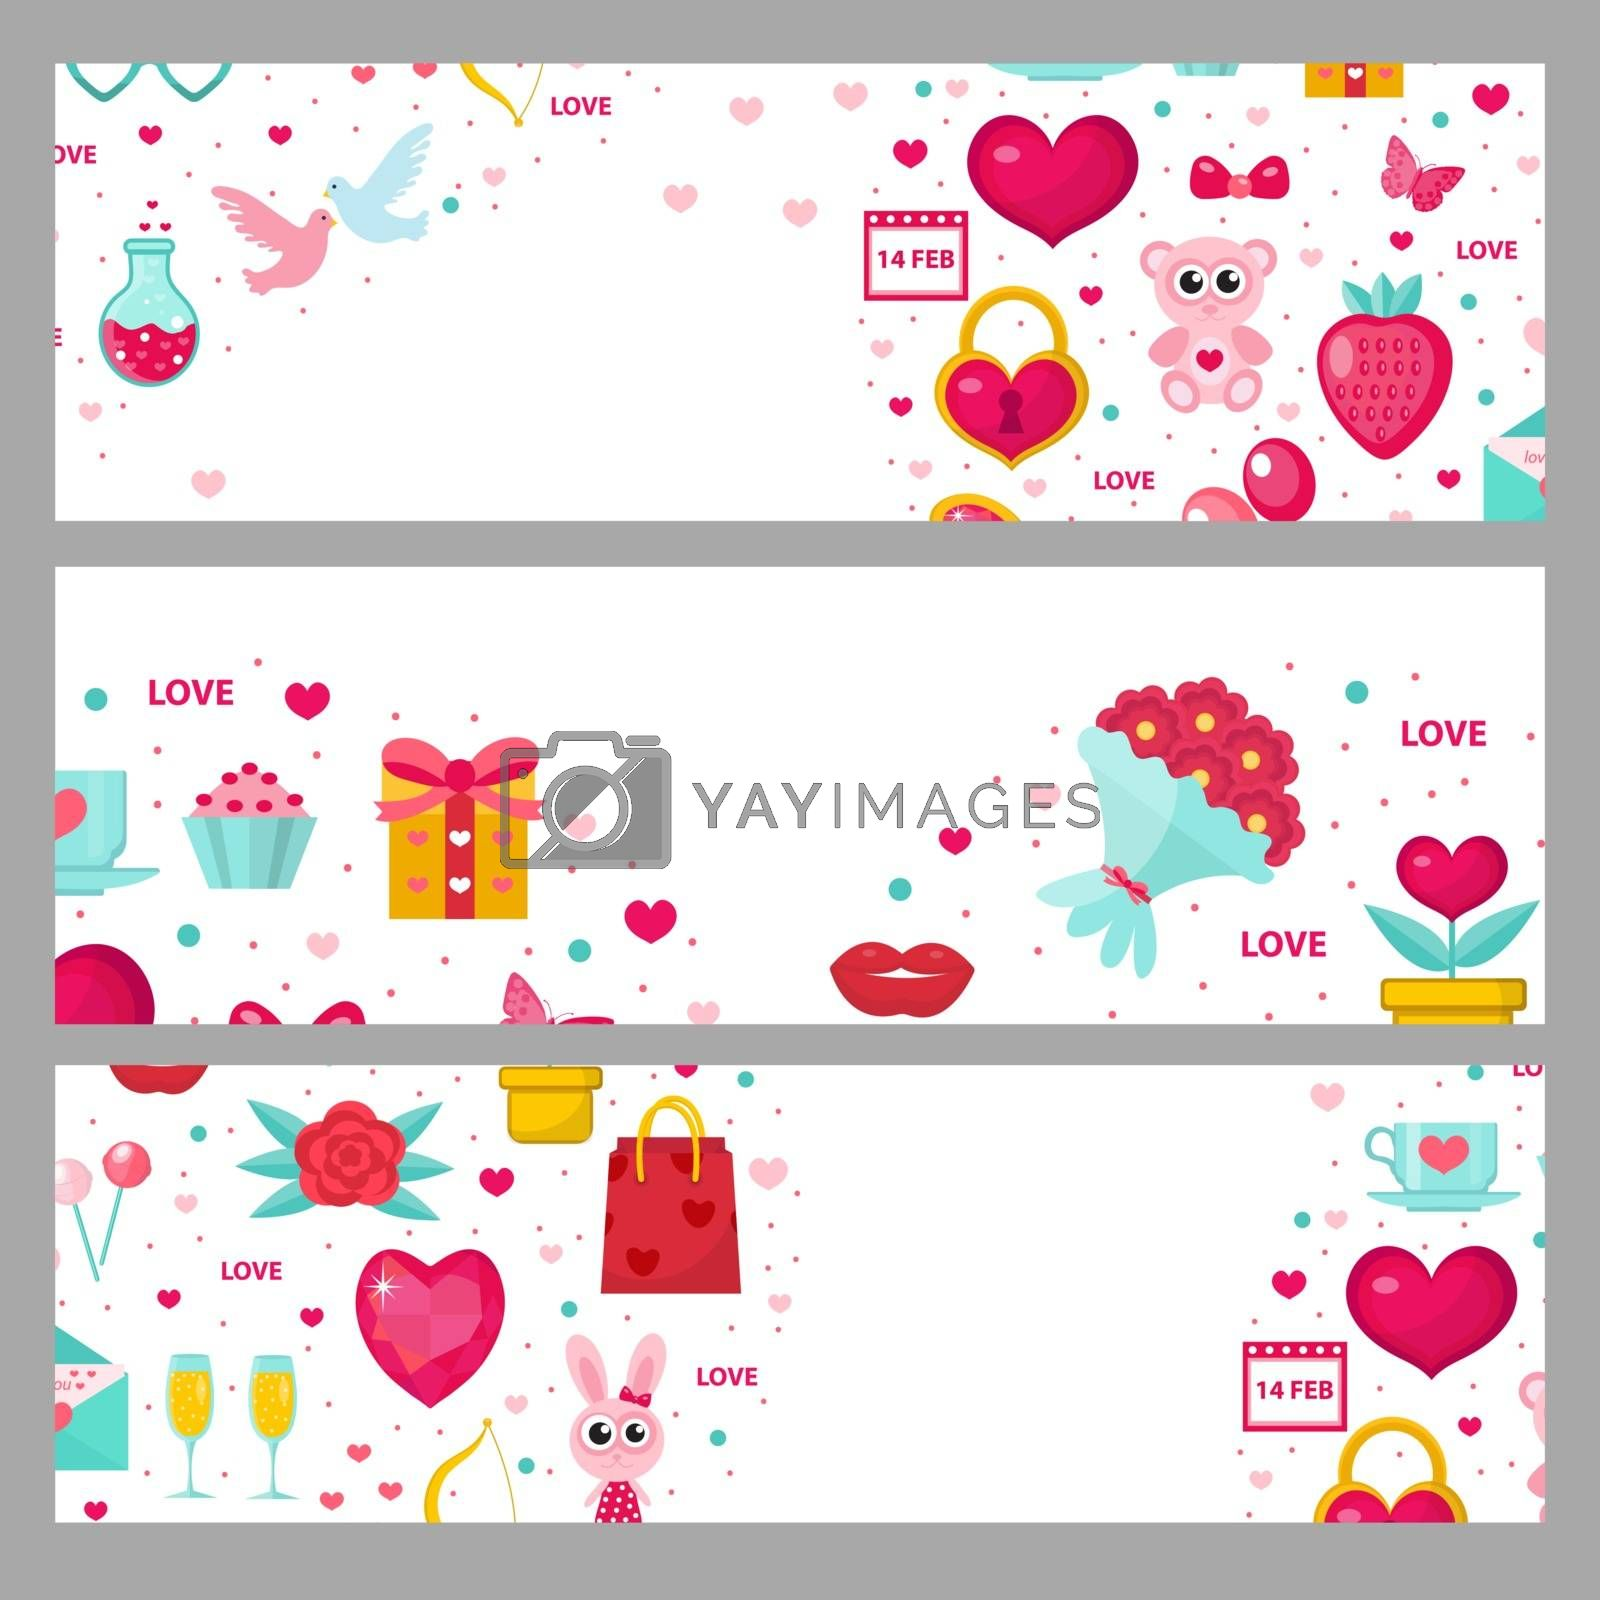 Valentines day banner set. Template with space for text. Love, romance horizontal border. Vector illustration. by Lucia Fox